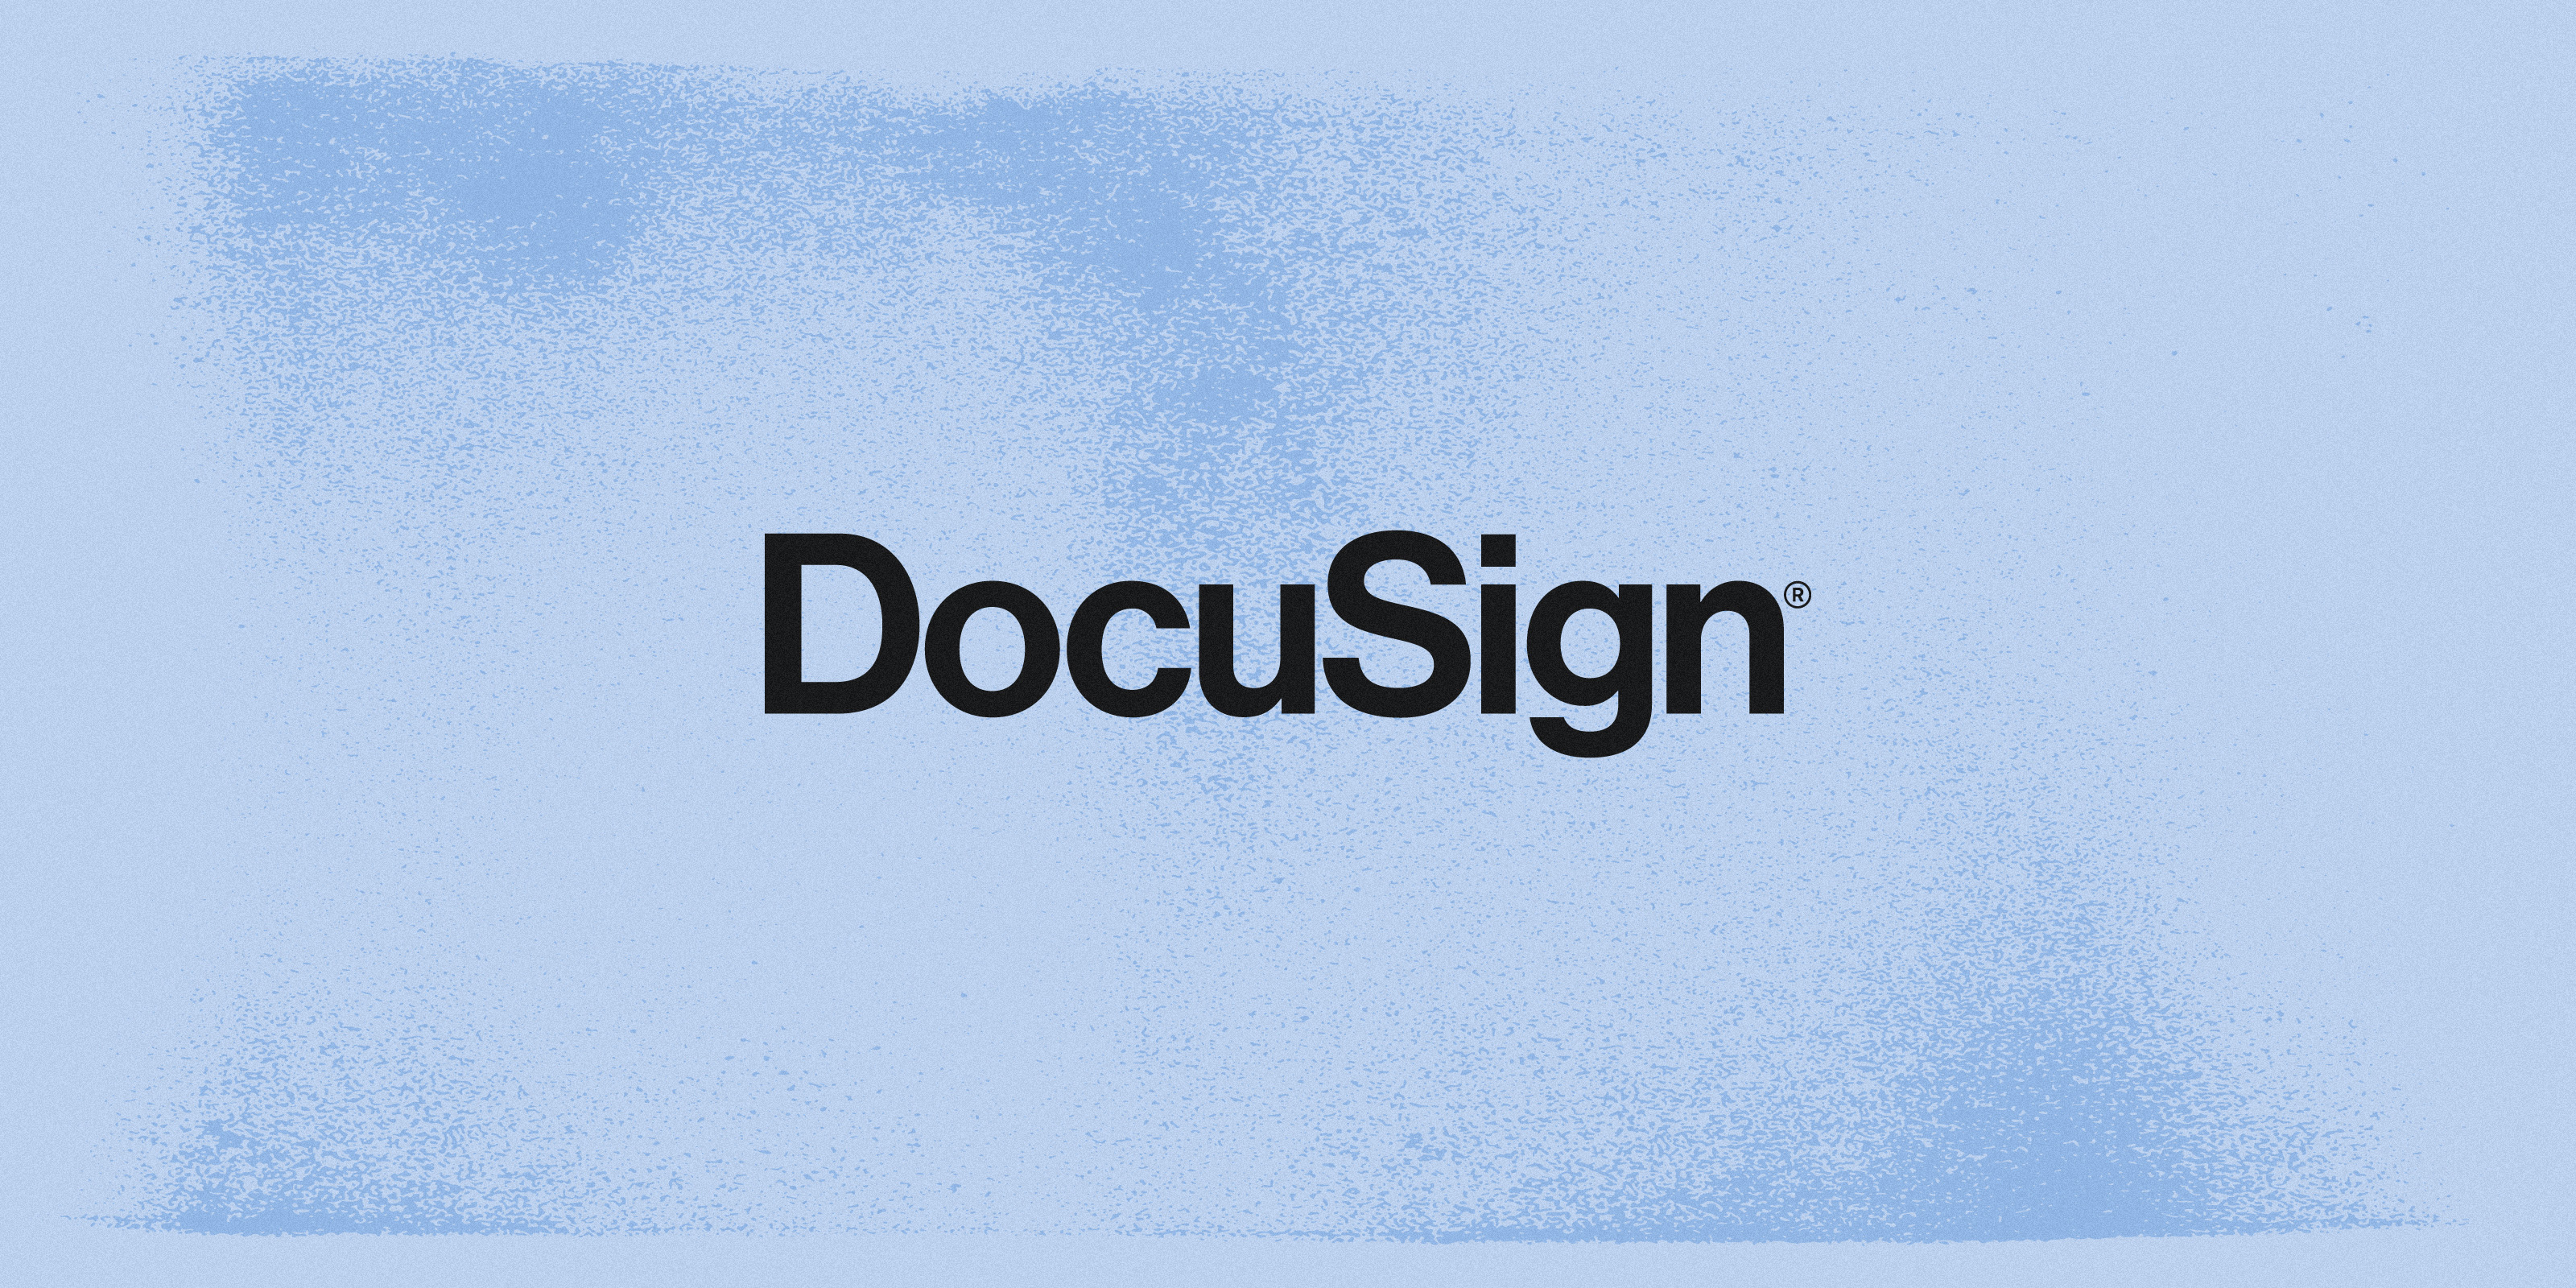 How DocuSign uses Abstract to build a culture of thoughtful collaboration